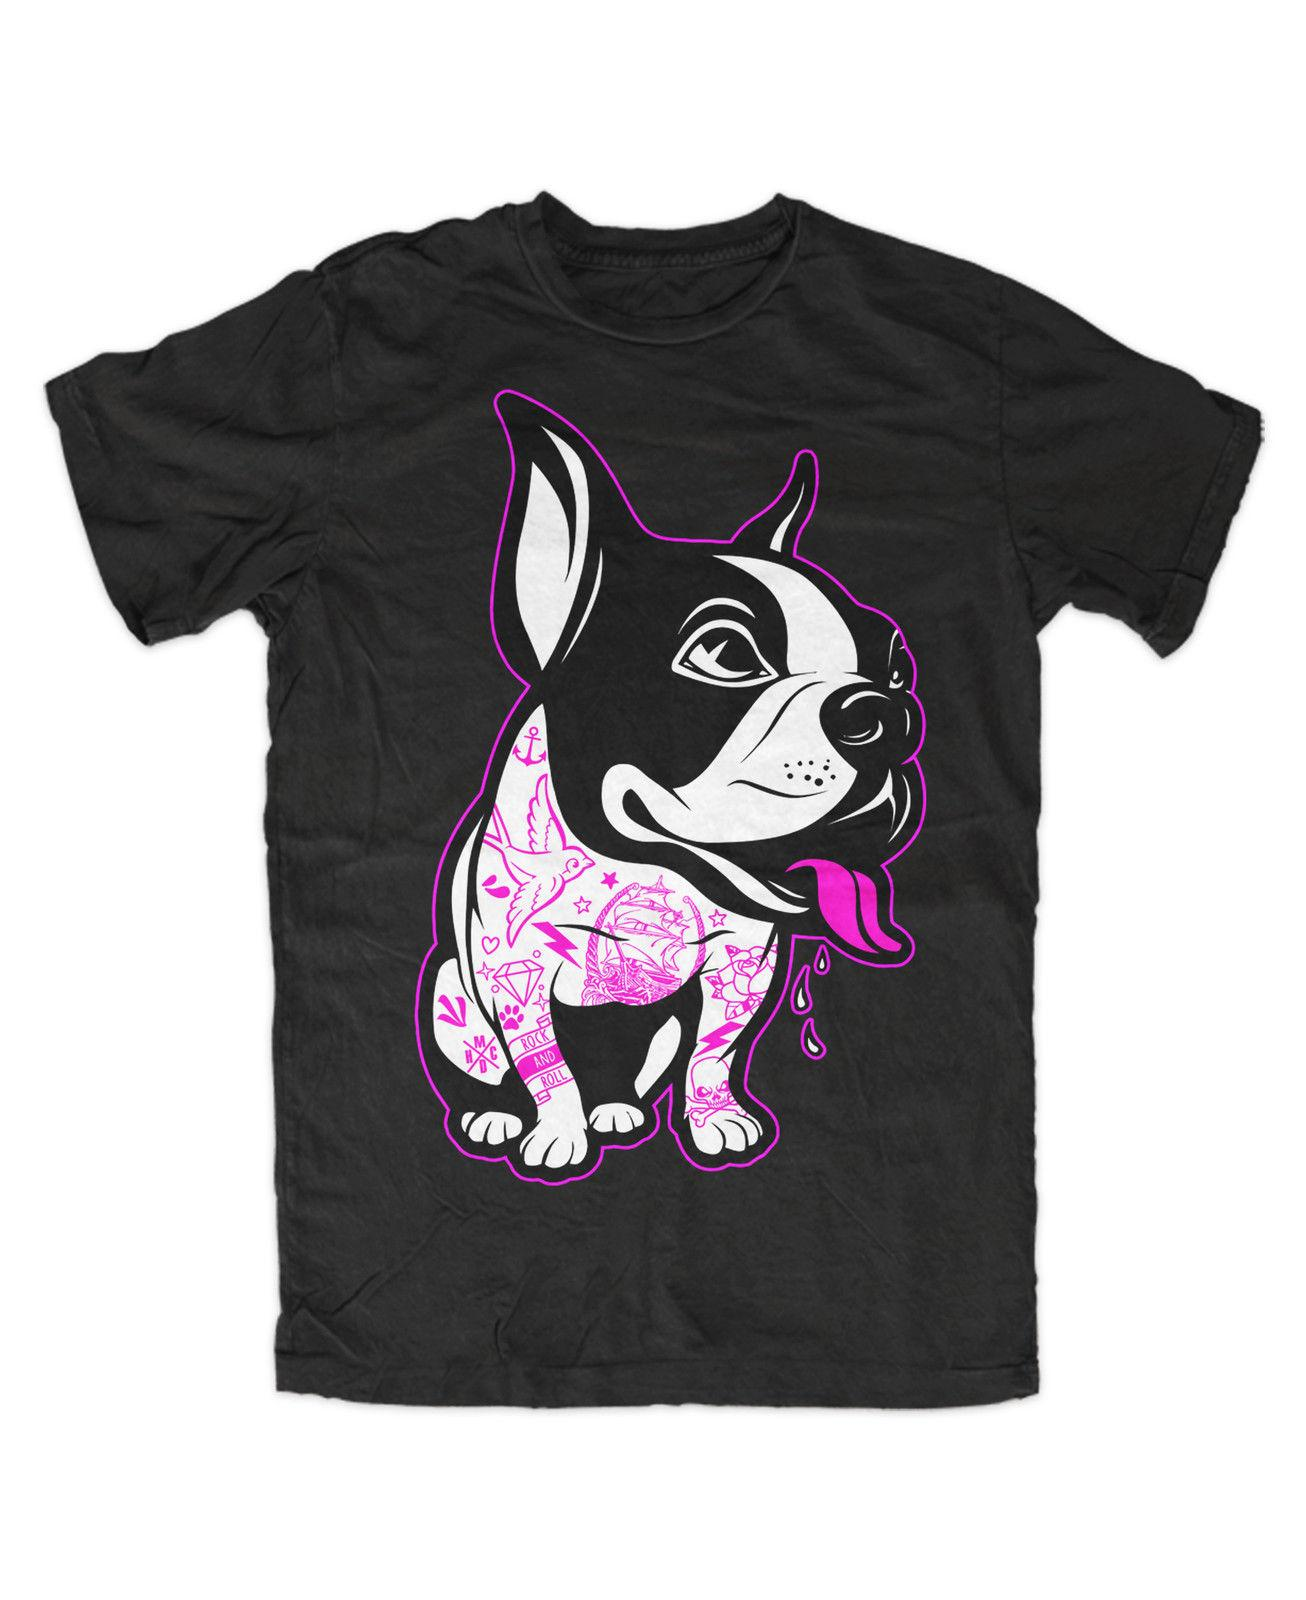 df2c45637bd7 Details Zu French Bulldog Tattooed T Shirt Frenchi,Dog,Love,Tattoo,Street,Fashion,Ink,Hund  Funny Unisex Casual Gift Awesome T Shirts For Men T Shirts ...